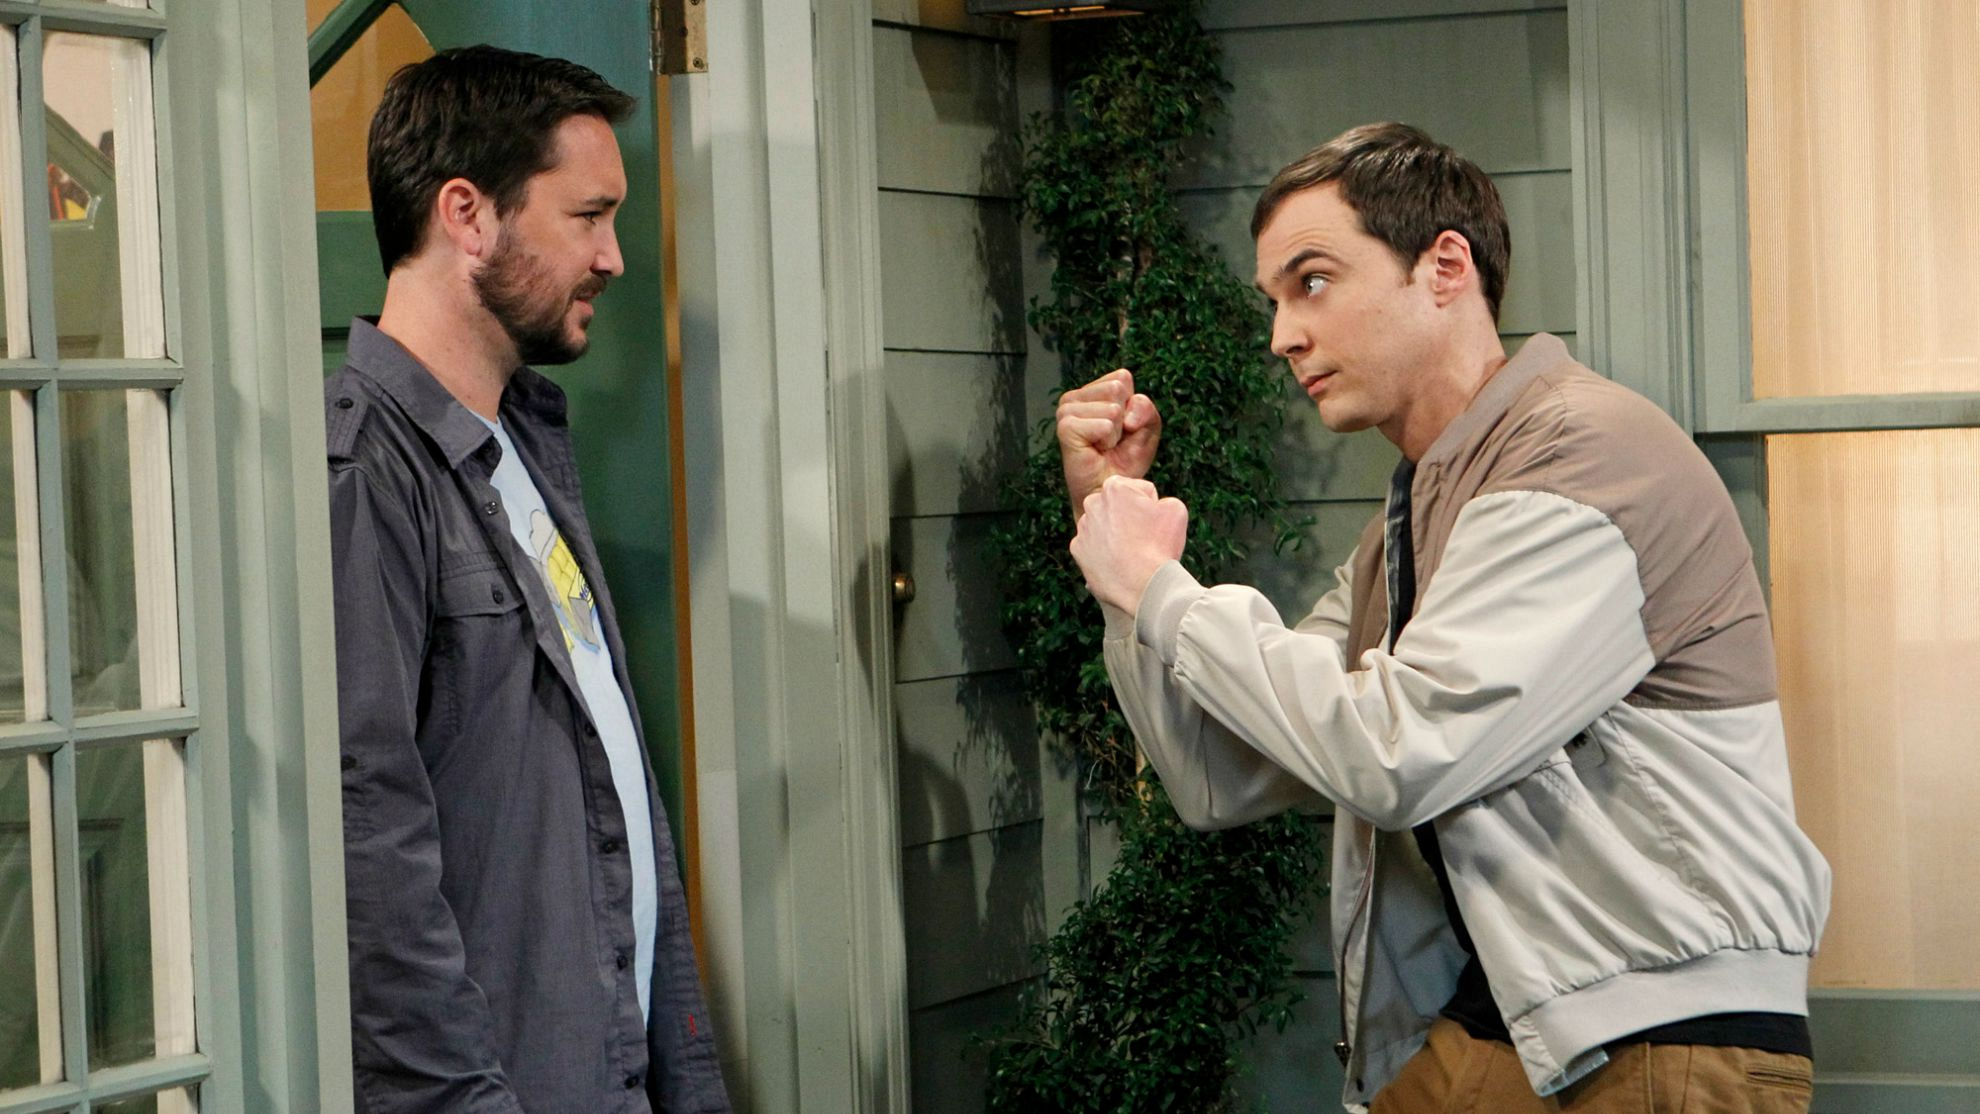 Sheldon Cooper vs. Wil Wheaton